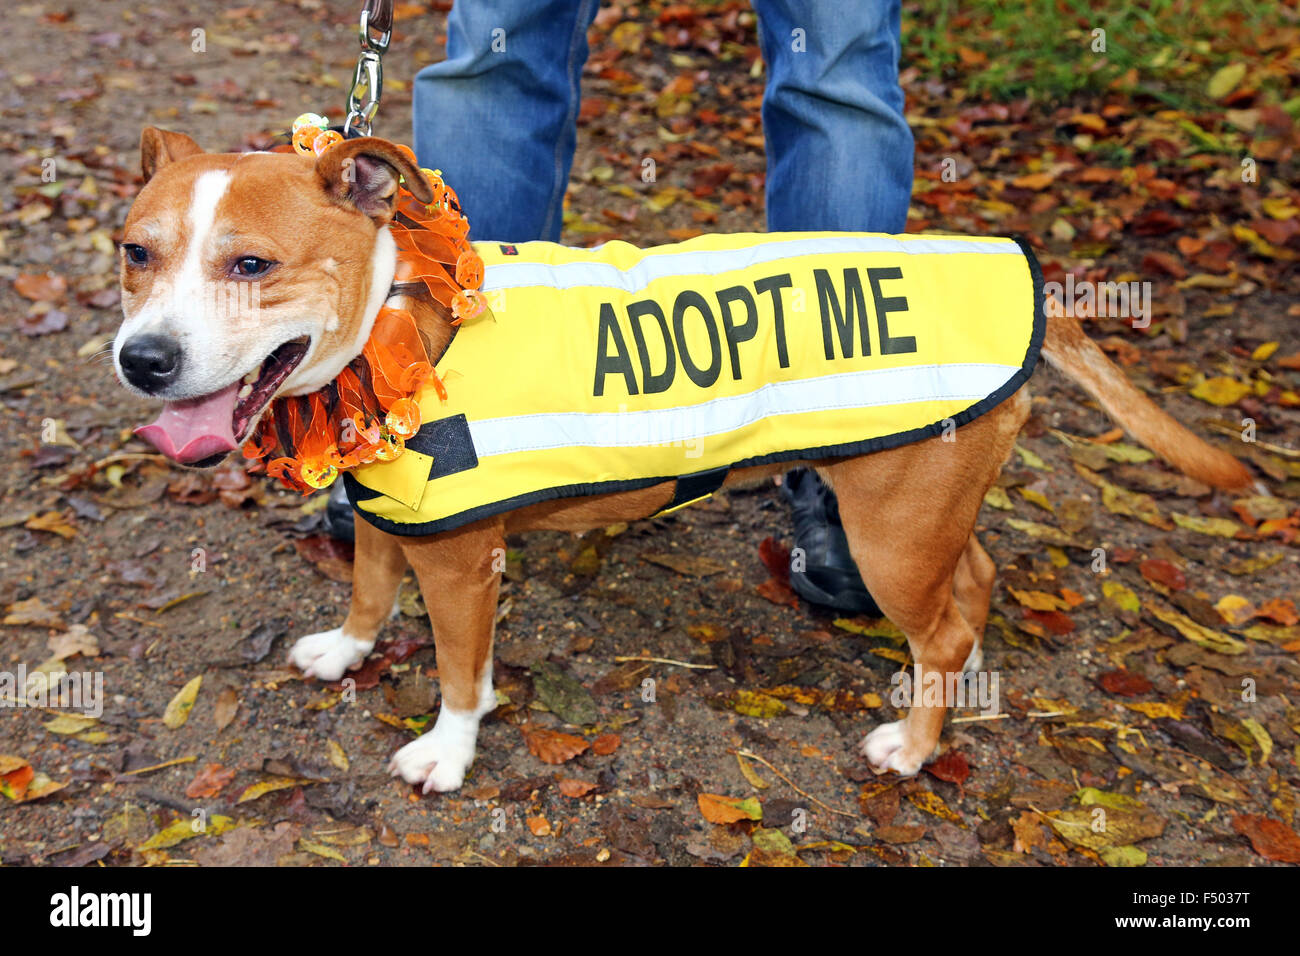 London UK 25th October 2015 A dog available for adoption at the